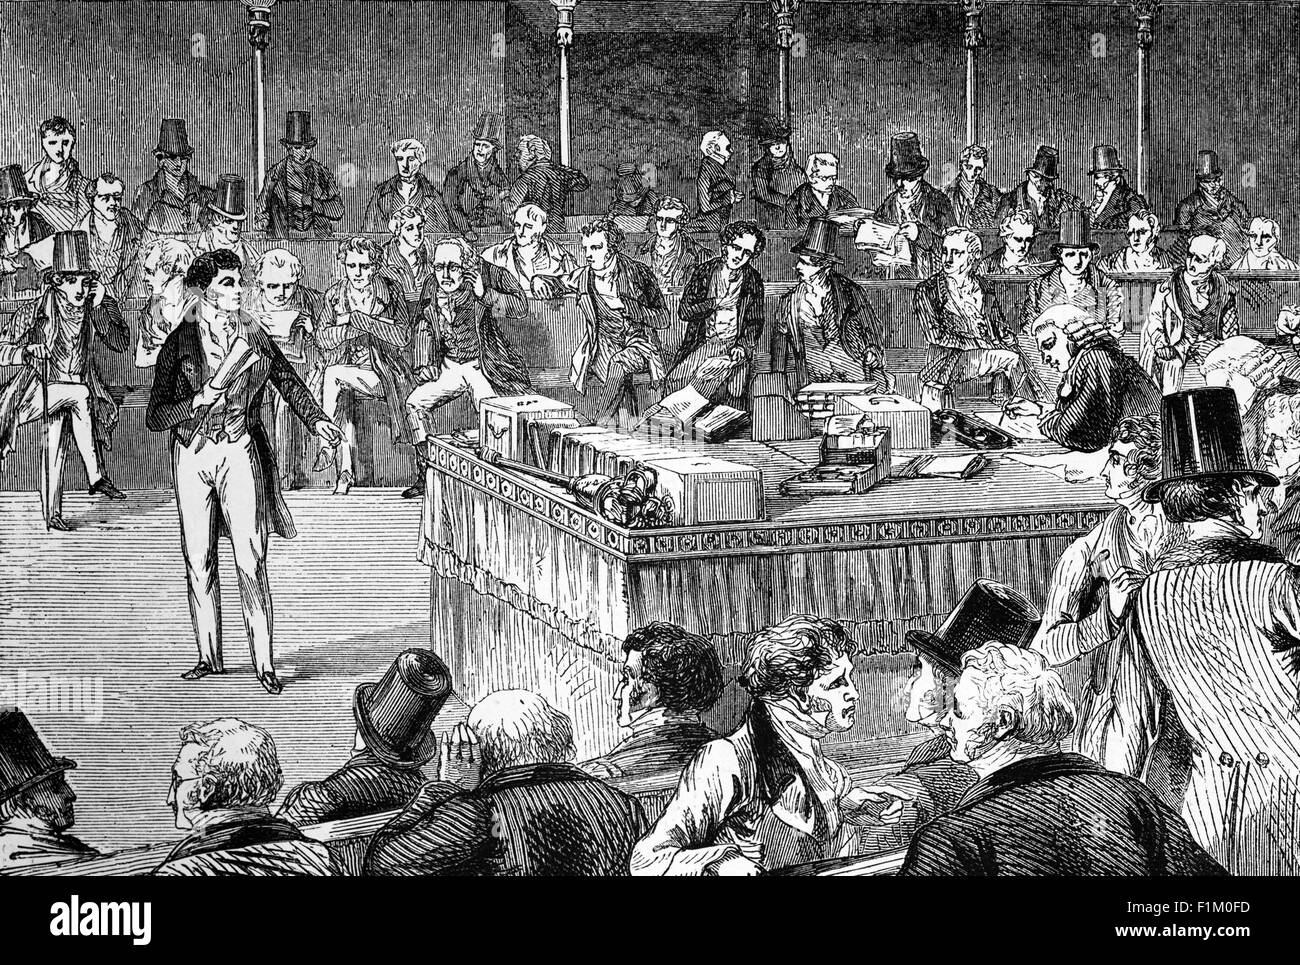 Lord John Russell, English Whig and Liberal politician, in the British House of Commons, Introducing the Reform - Stock Image